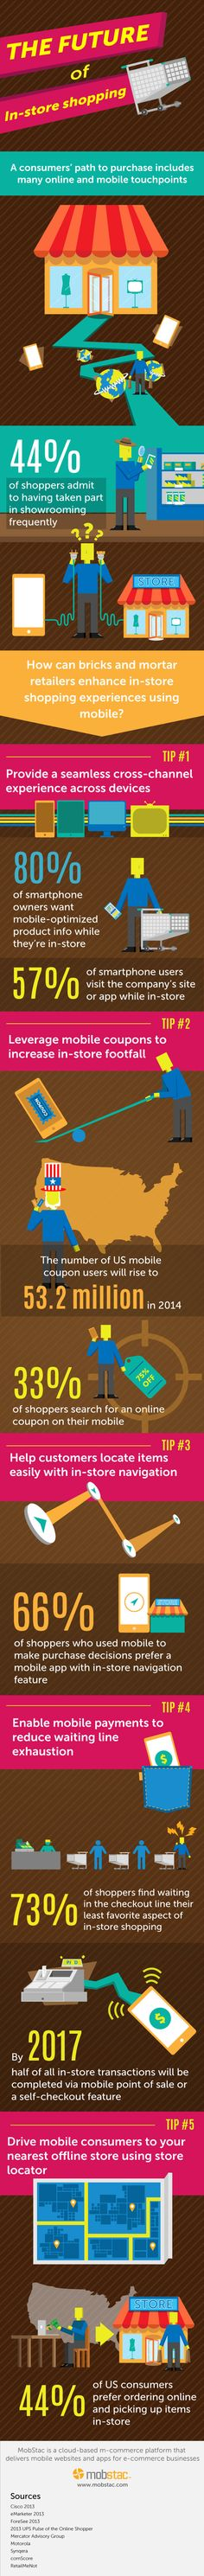 #Mobile Phones Are Changing #Retail #infographic #ecommerce #mcommerce #technology